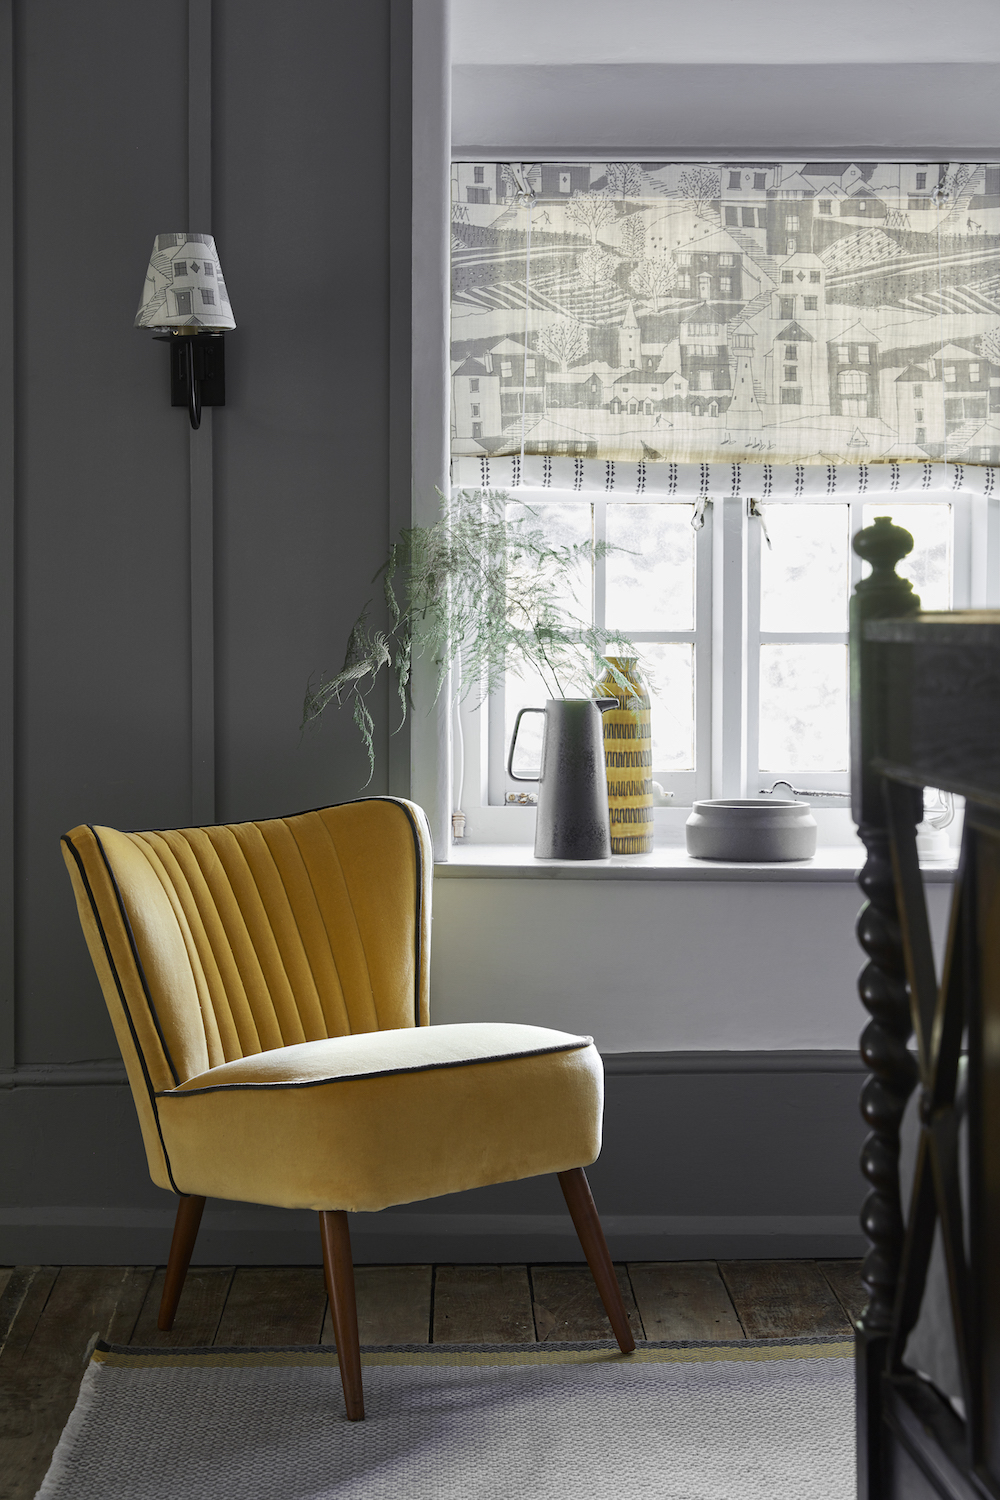 SWEDISH BLIND: By the Sea Scree, Charcoal SEA-67-38 £52/mtr lined in Simple Ticking Detail Charcoal TICKING-38 £49.50/mtr; LAMPSHADE: By the Sea Scree, Charcoal SEA-67-38 £52/mtr; RETRO CHAIR: Honey Velvet VELVET-72 £58/mtr piped in Thunder Velvet VELVET-74 £58/mtr; RUG: Geometric Grey, Saffron, Winter RGEO-95-52-50 £240